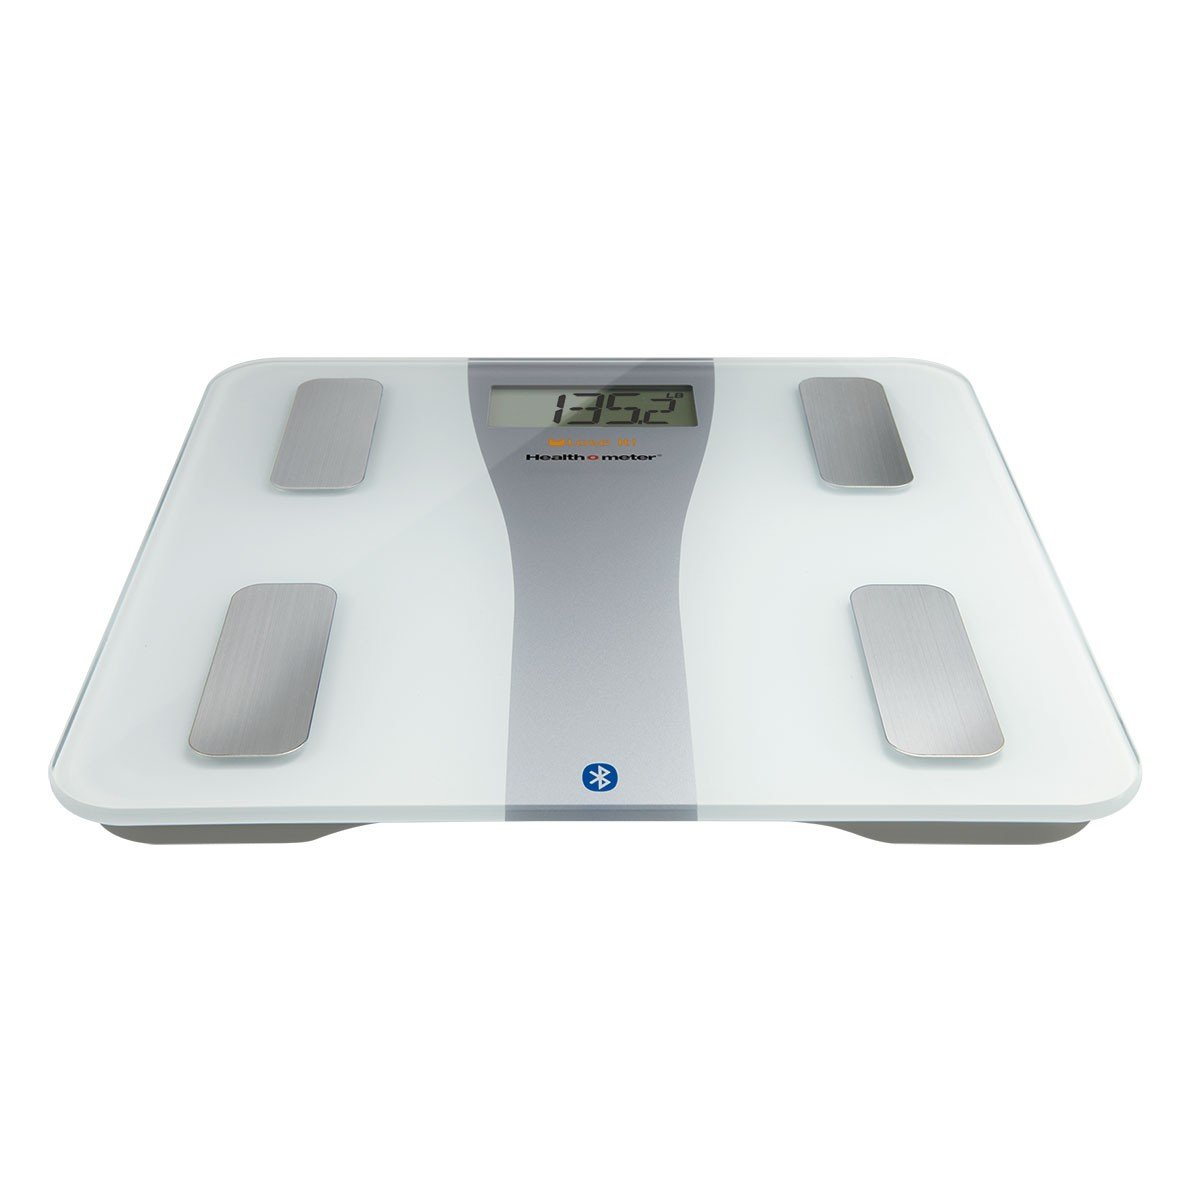 Lose It! Bluetooth Body Fat Scale by Health o Meter for Iphone ,Compatible:  iPhone 4S, 5, 5C, 5S ; iPod Touch-5th gen ; iPad Mini, 3rd gen, 4th gen:  Amazon.in: Home &